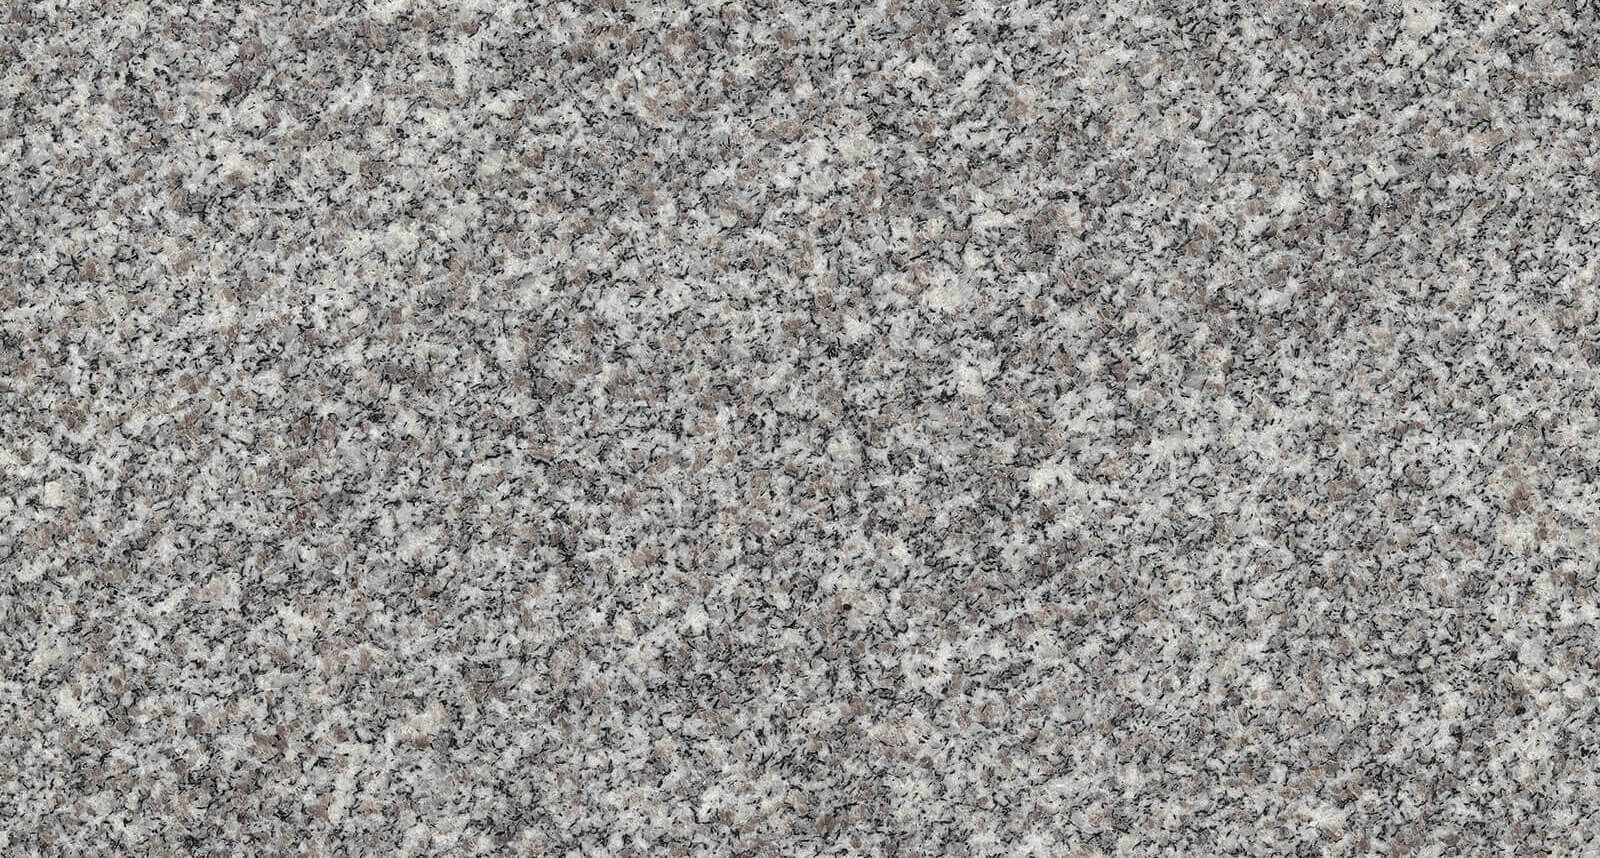 Stones - Polycor Hardscapes